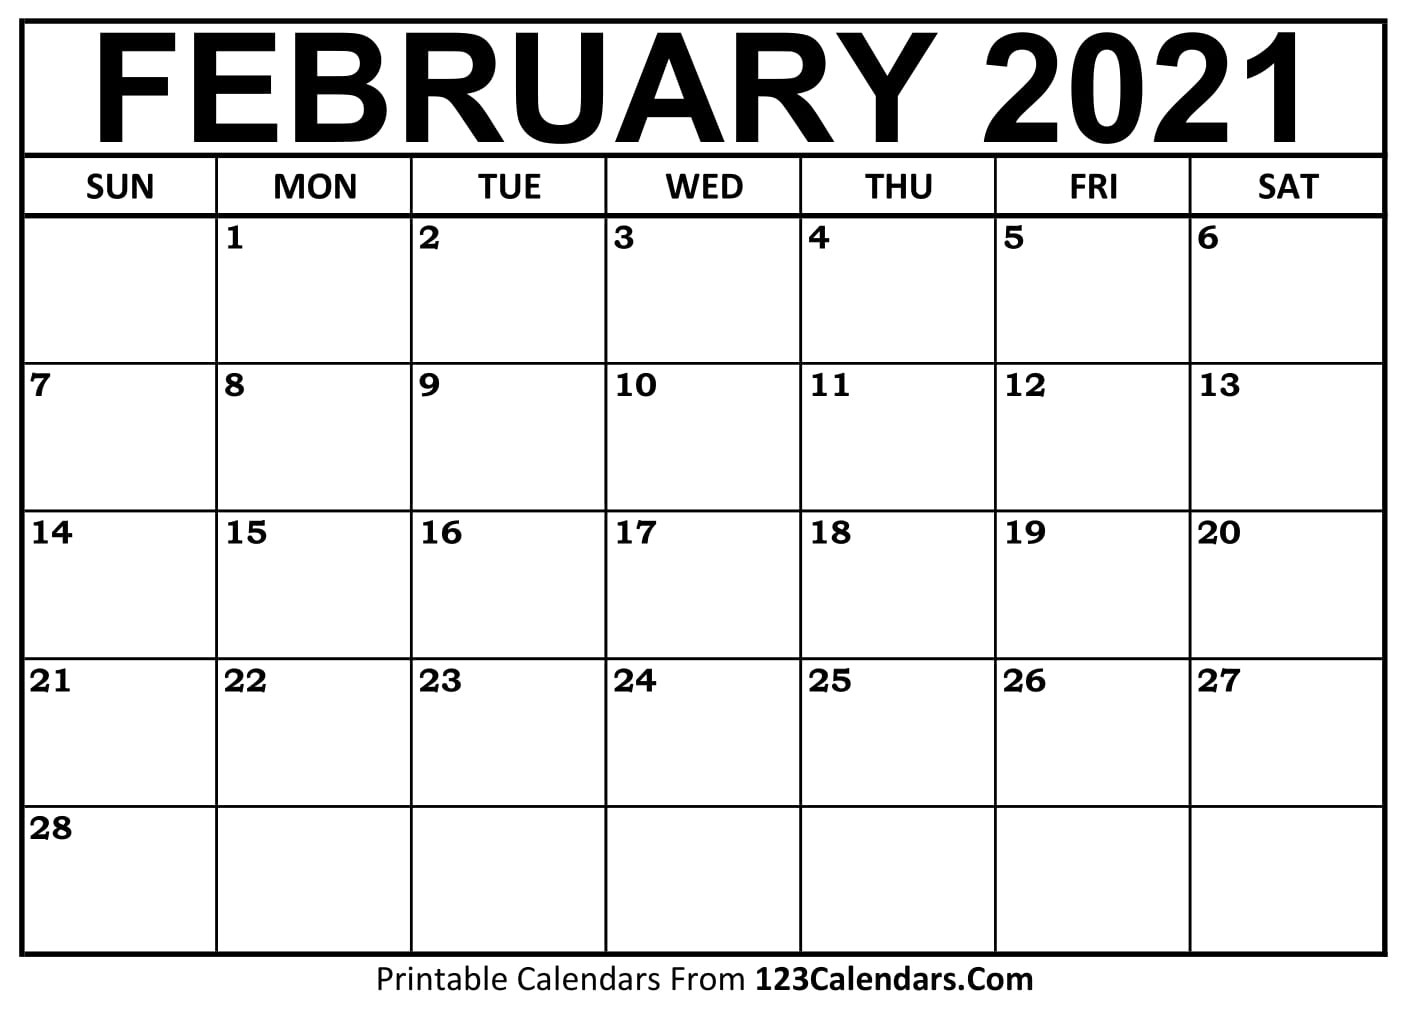 Print Free 2021 Calendar Without Downloading Weekly